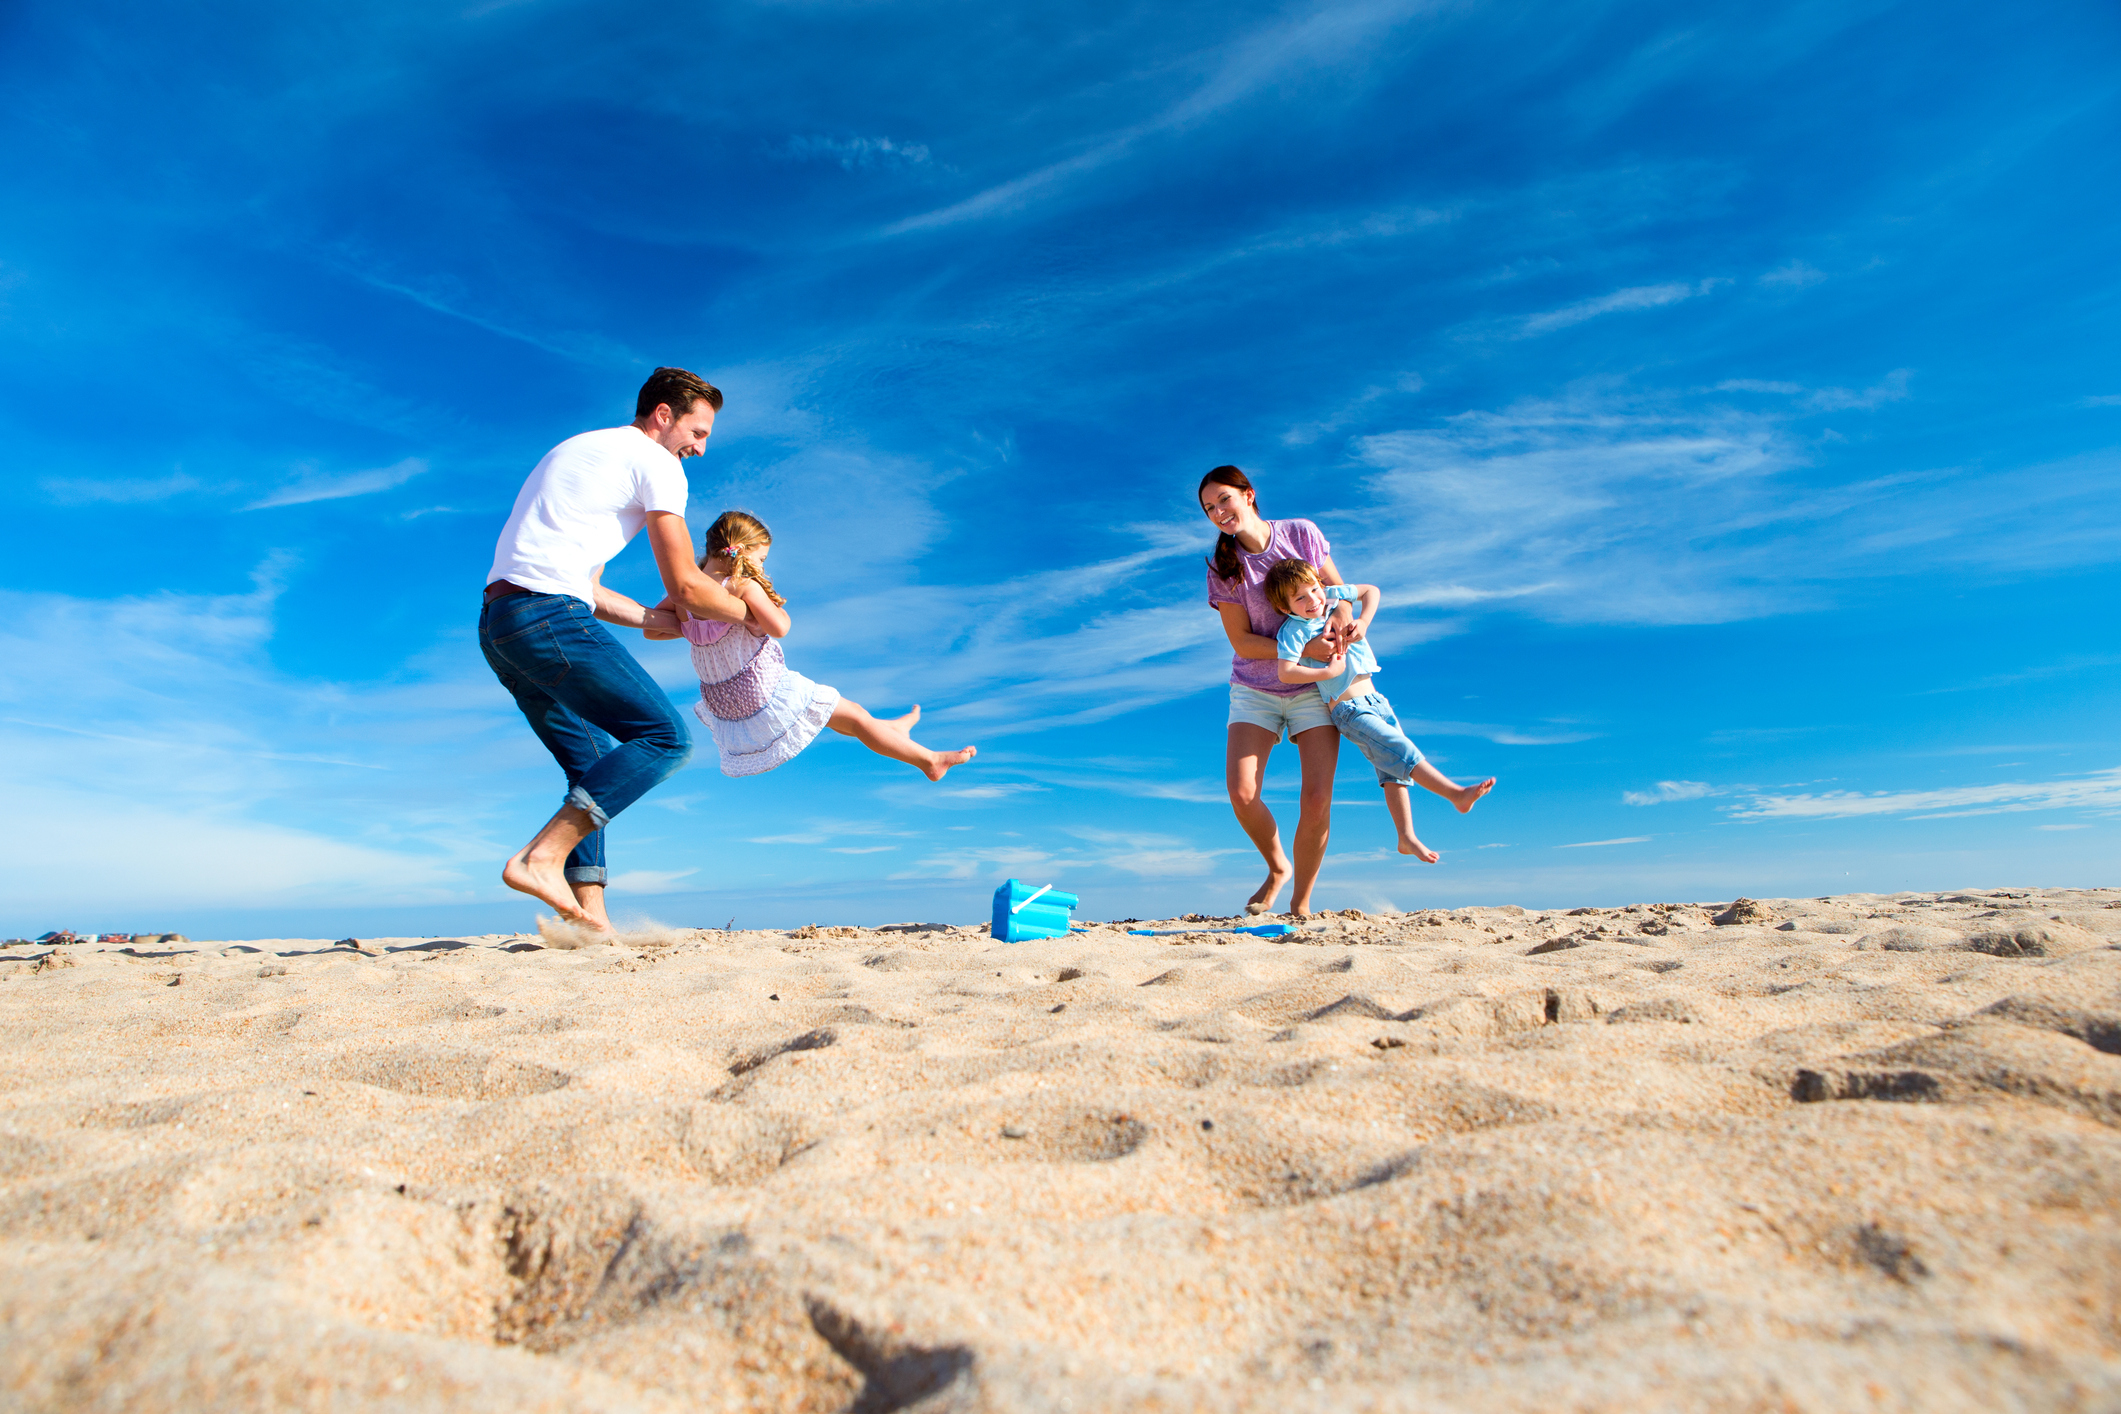 Making memories: How to have the best family holiday